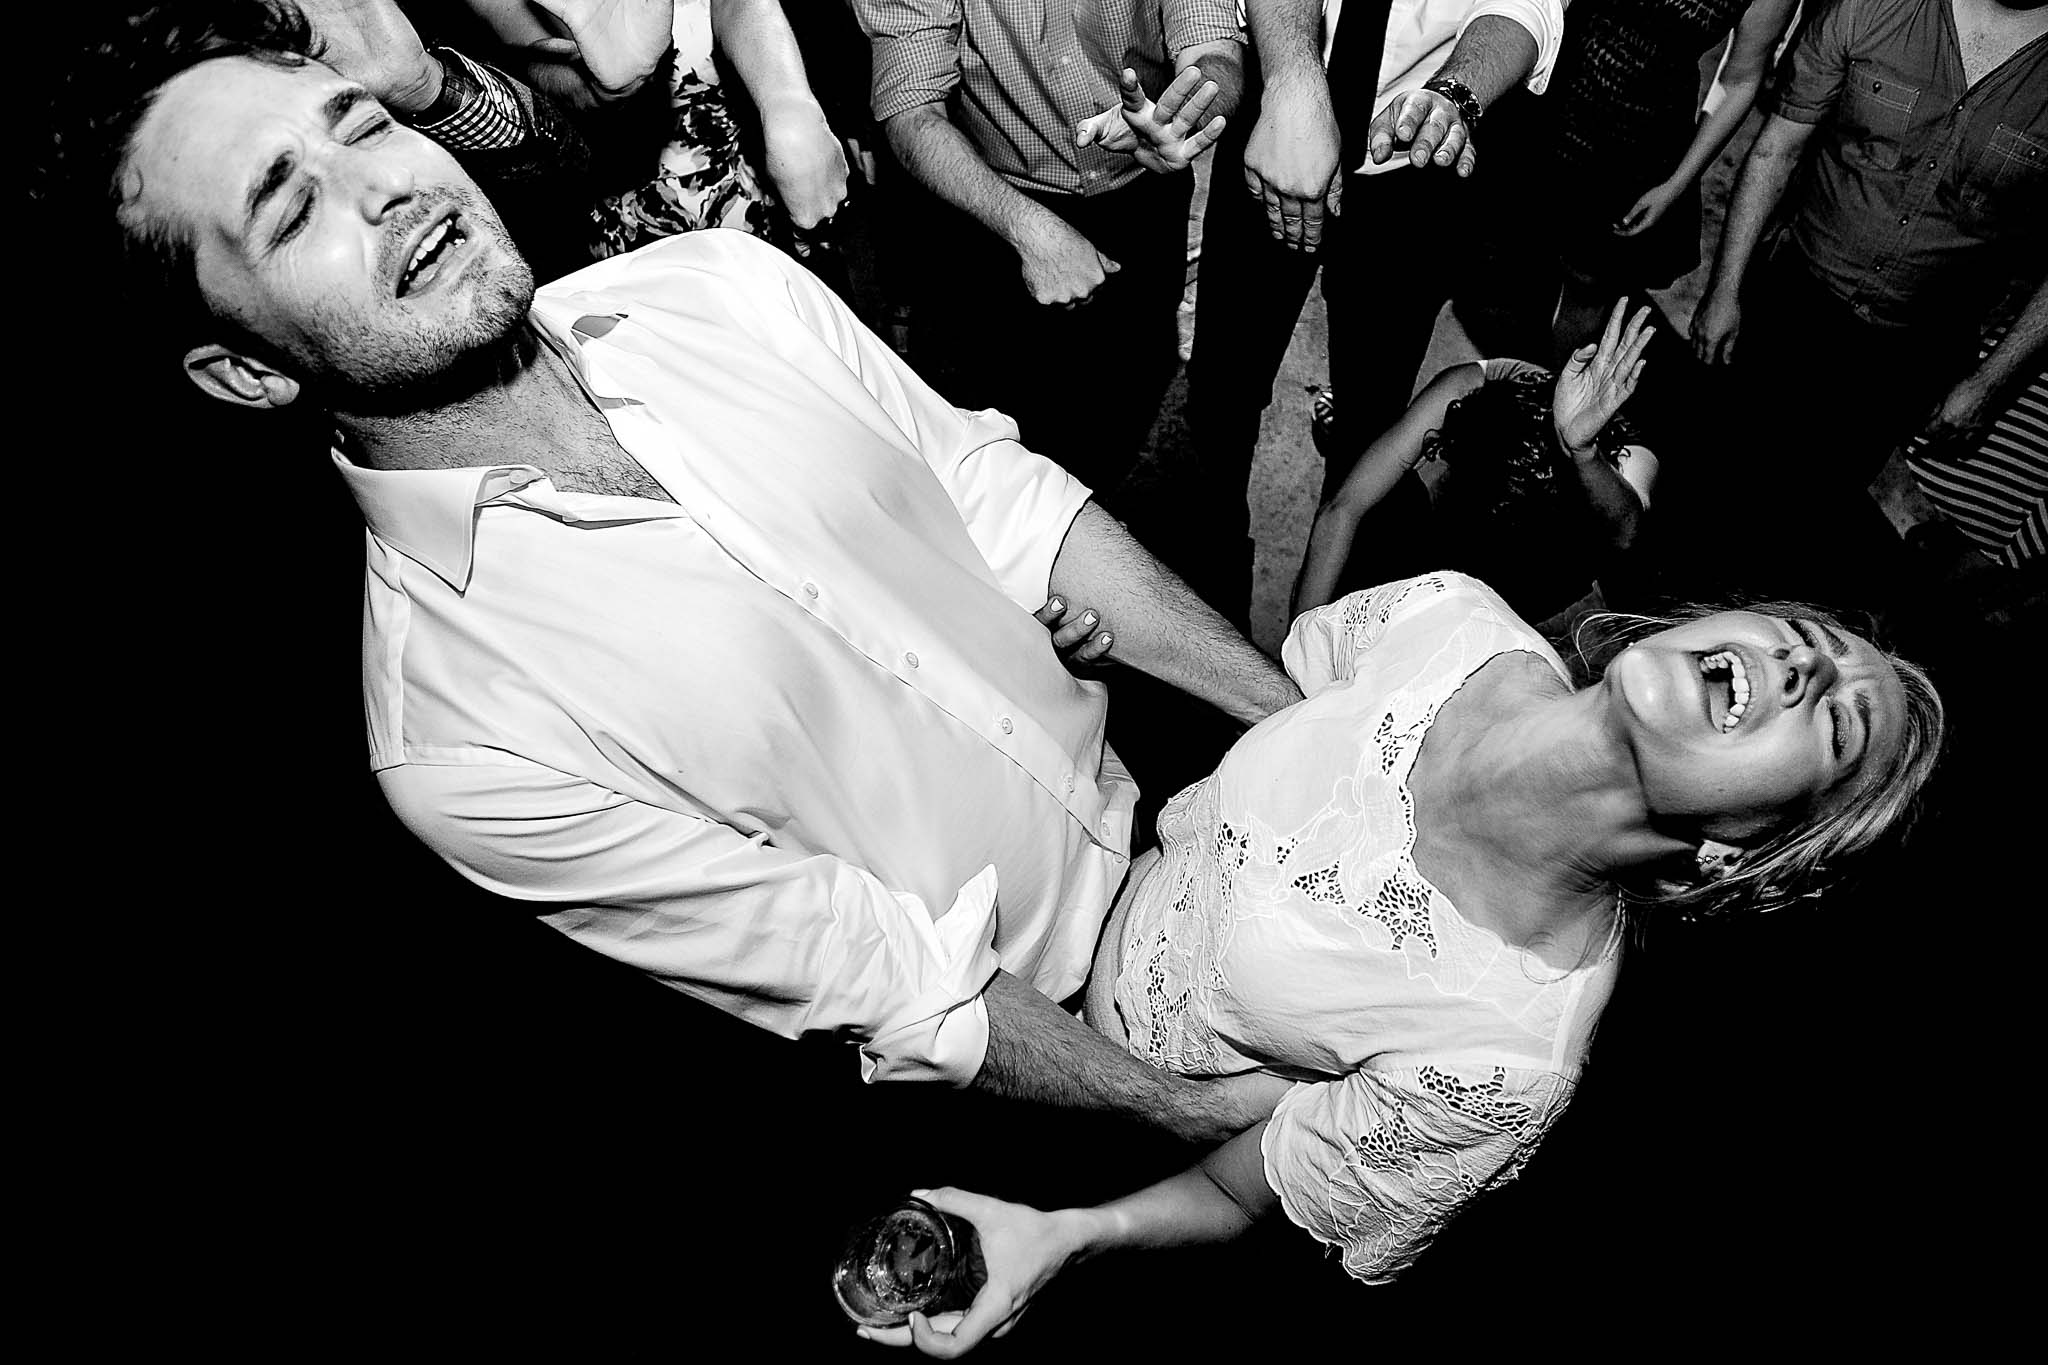 Bride and groom dancing wild on dance floor